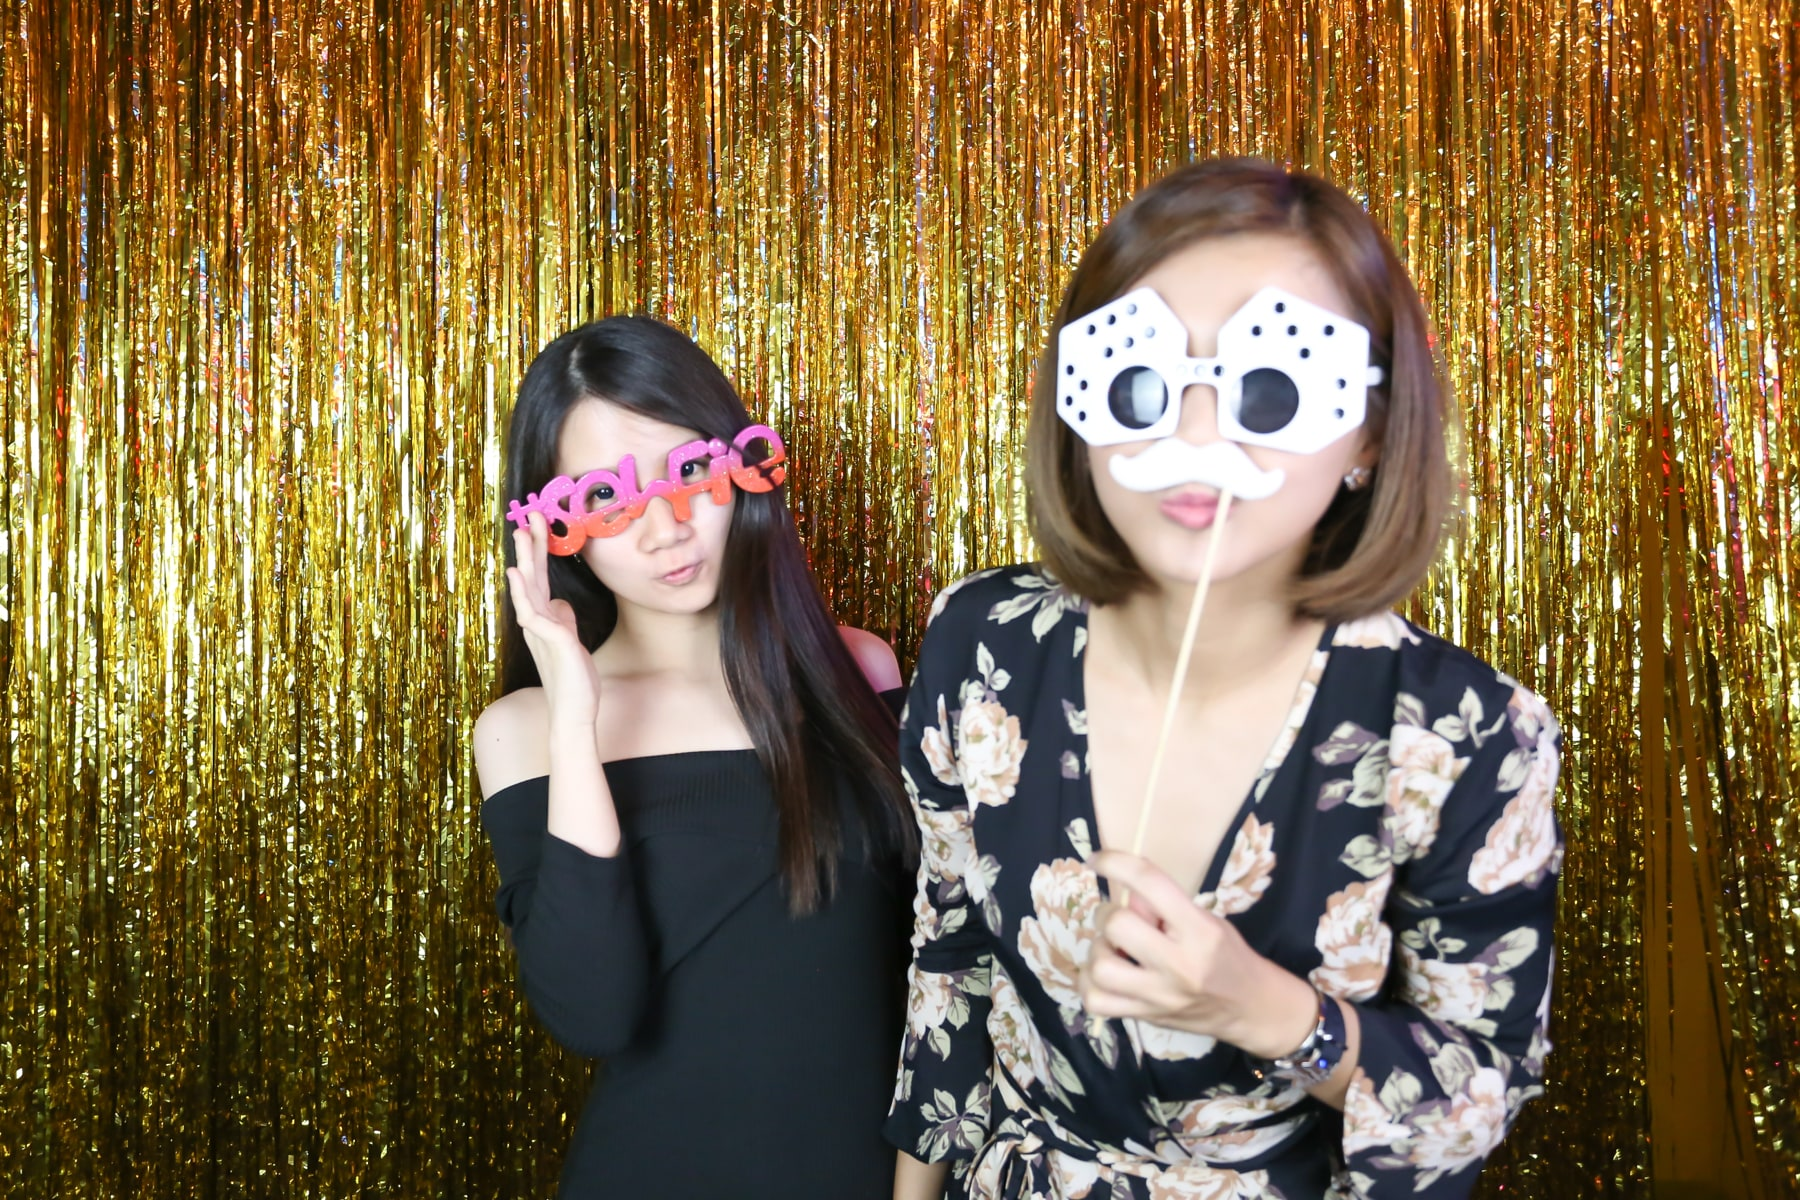 Sushivid+crunch+tagbooth+158